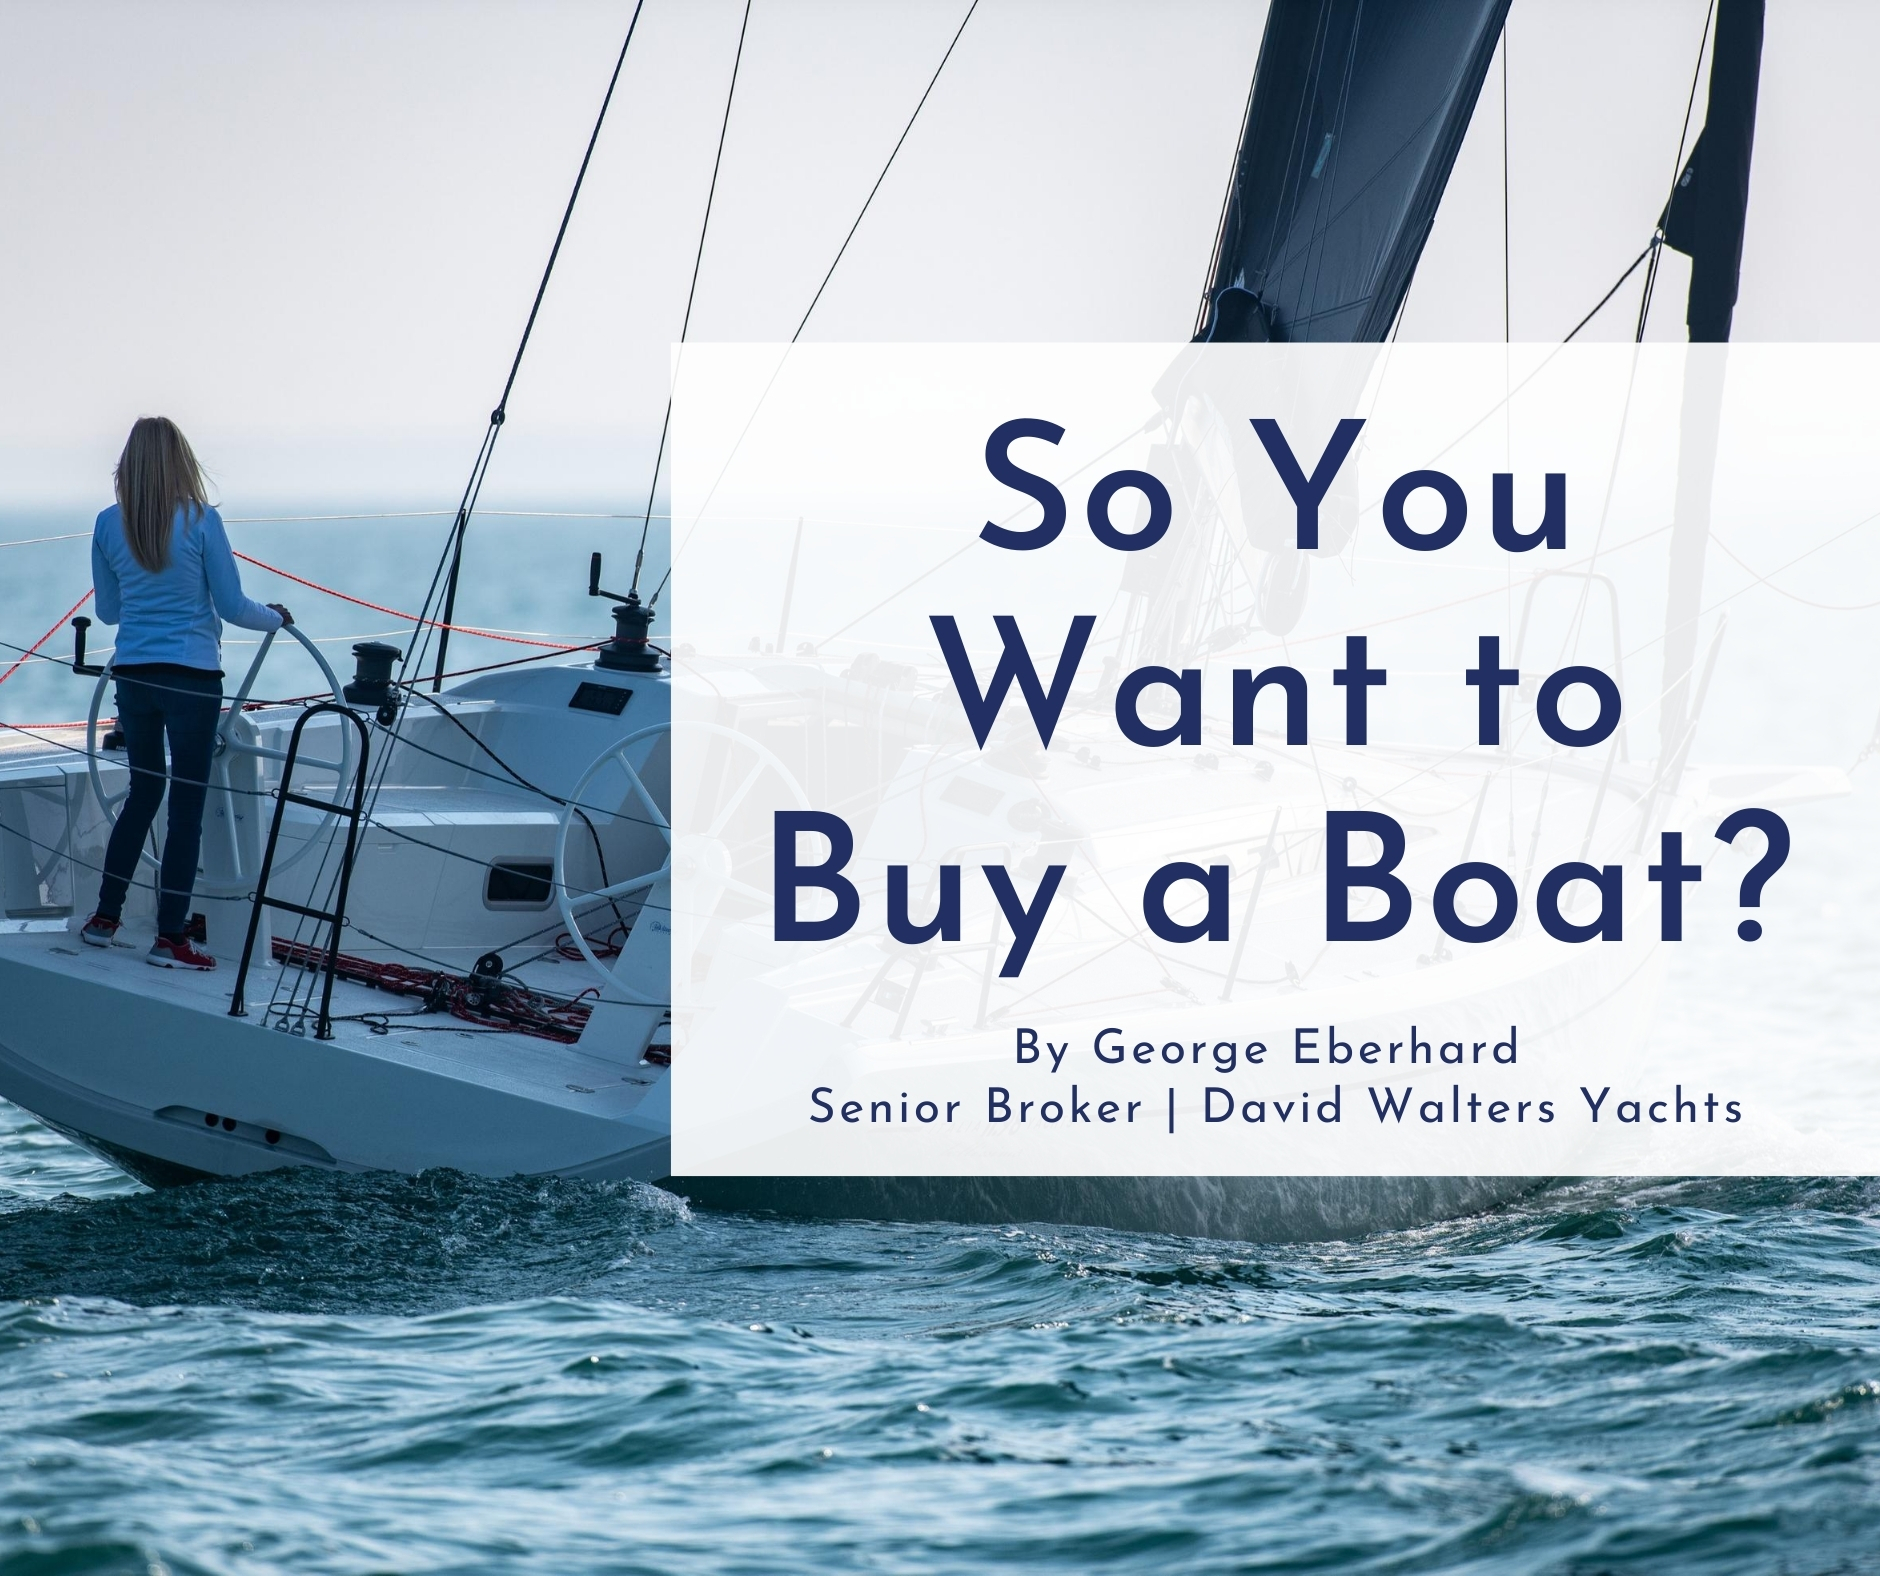 So You Want to Buy a Boat